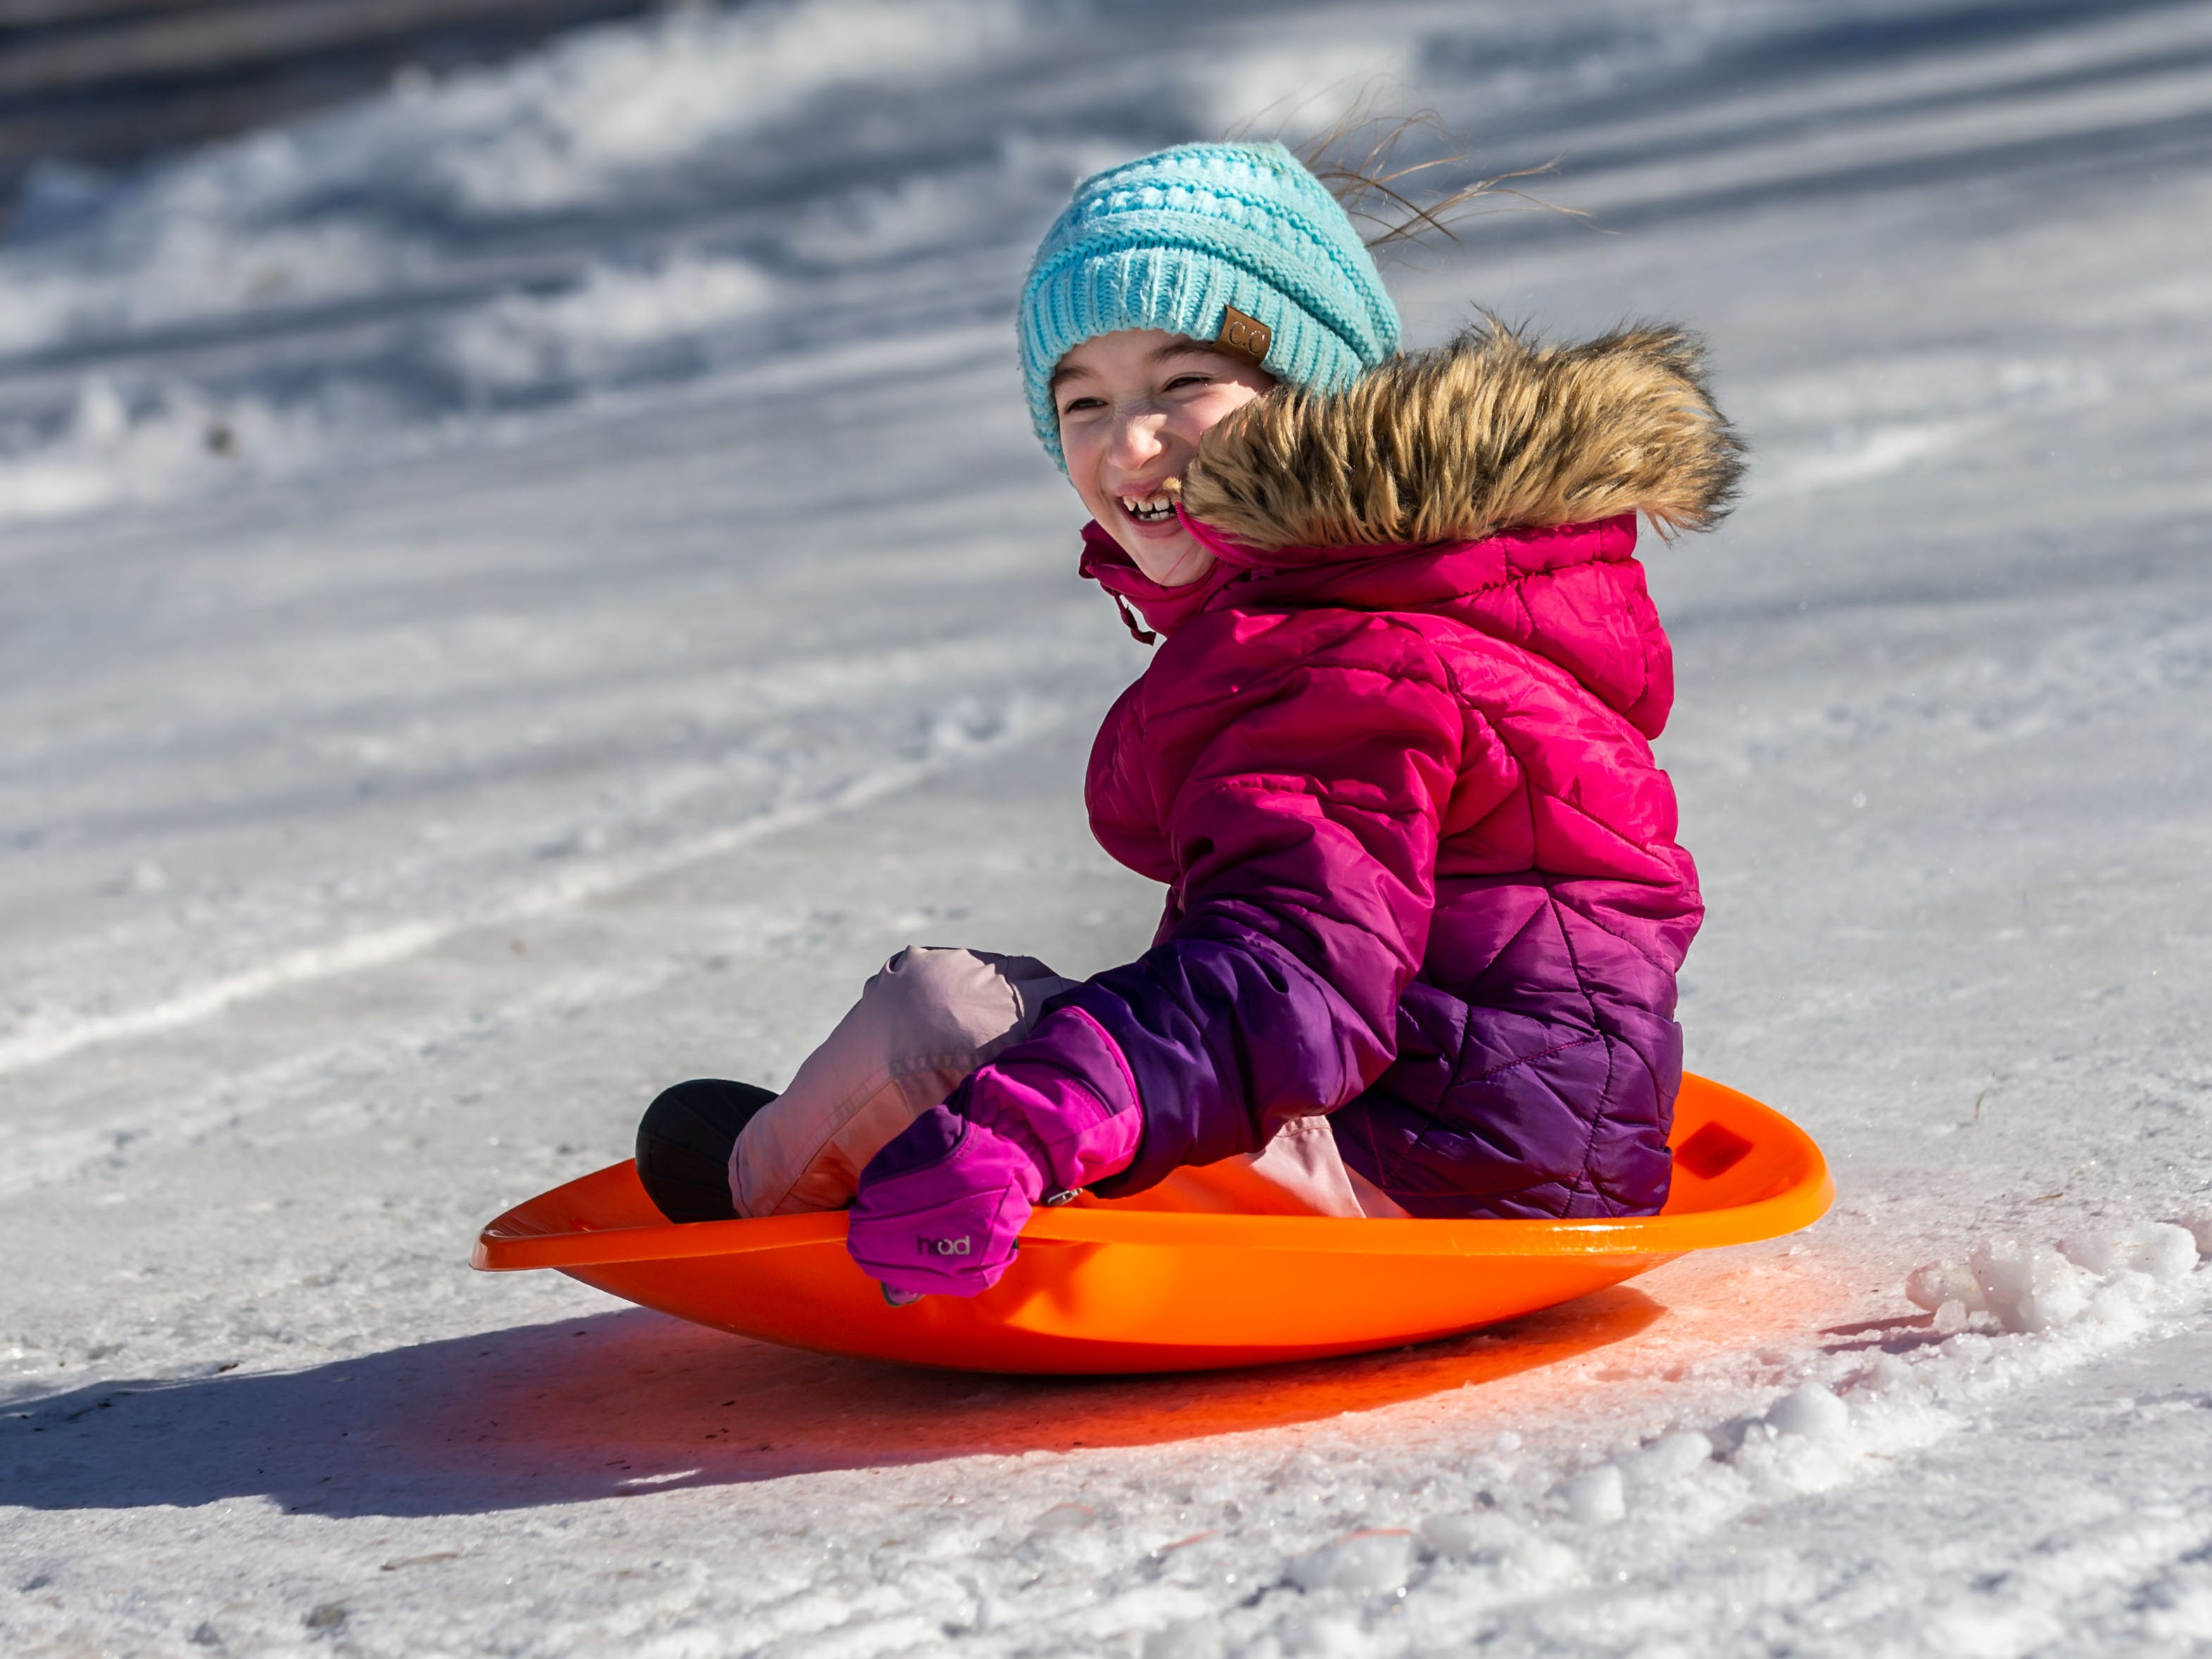 Hannah Callister, 8, of Lisbon zooms down the sledding hill during the annual Winterfest at Lisbon Community Park on Saturday, Feb. 9, 2019. The free event includes ice skating, sledding, skiing, a bonfire, a warming tent with free refreshments, hot dogs and s'mores.